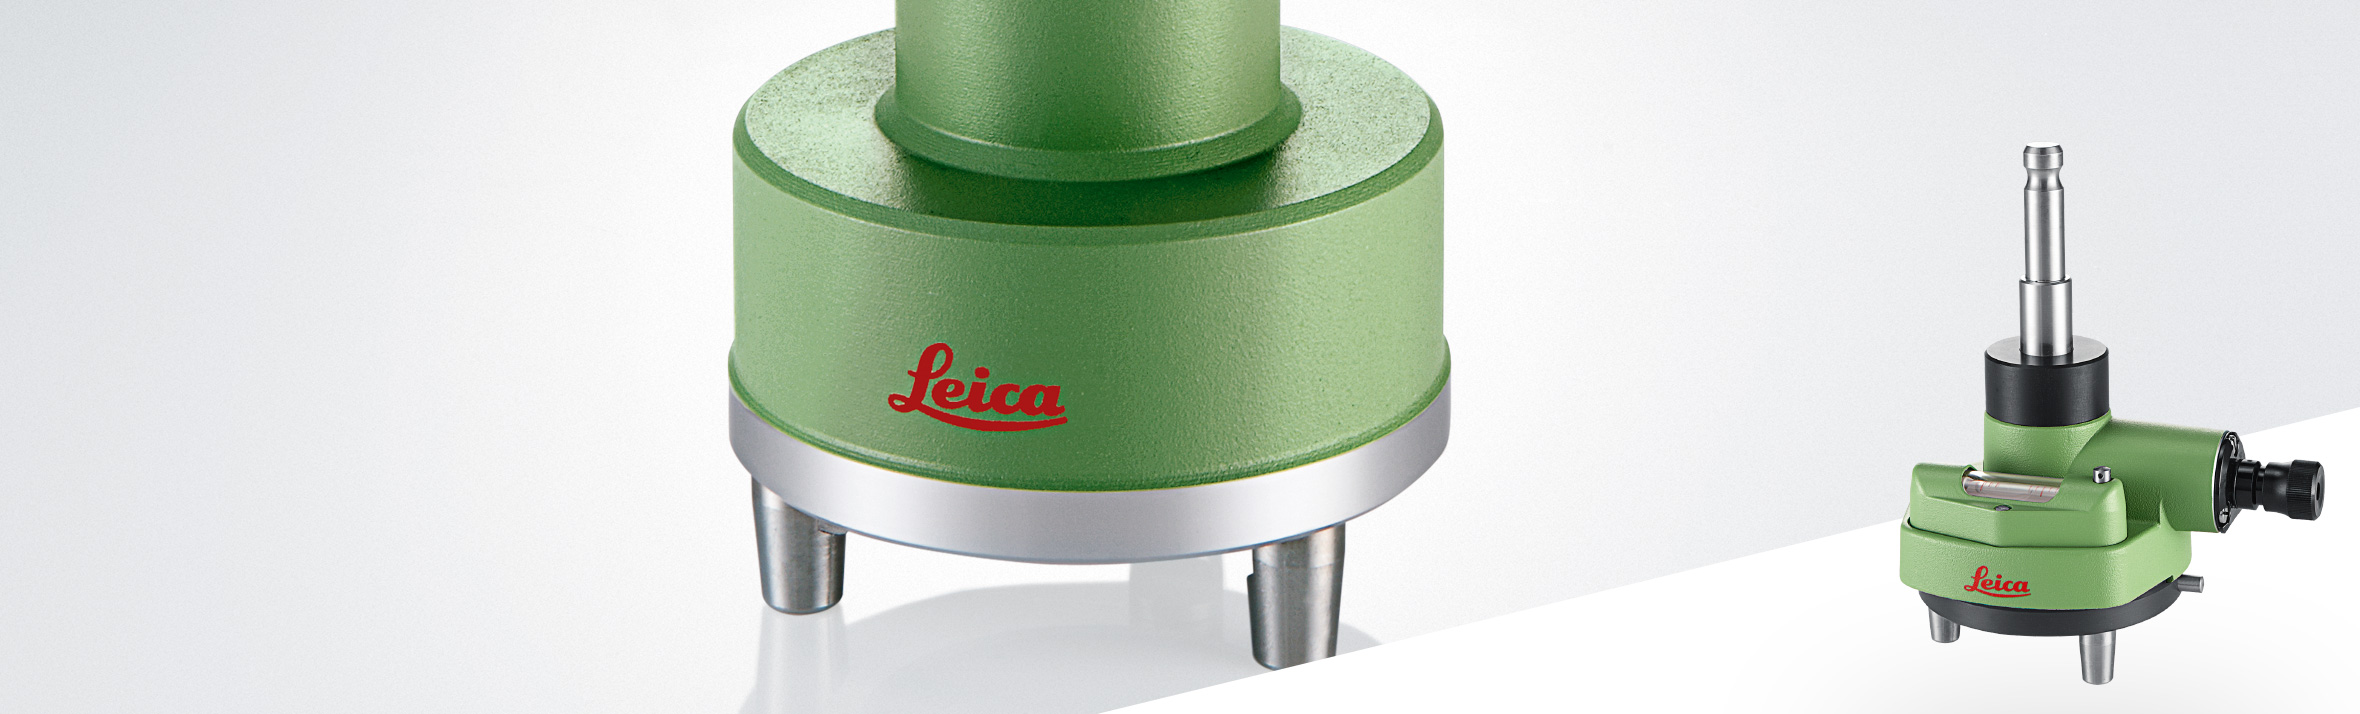 Leica Geosystems dragers